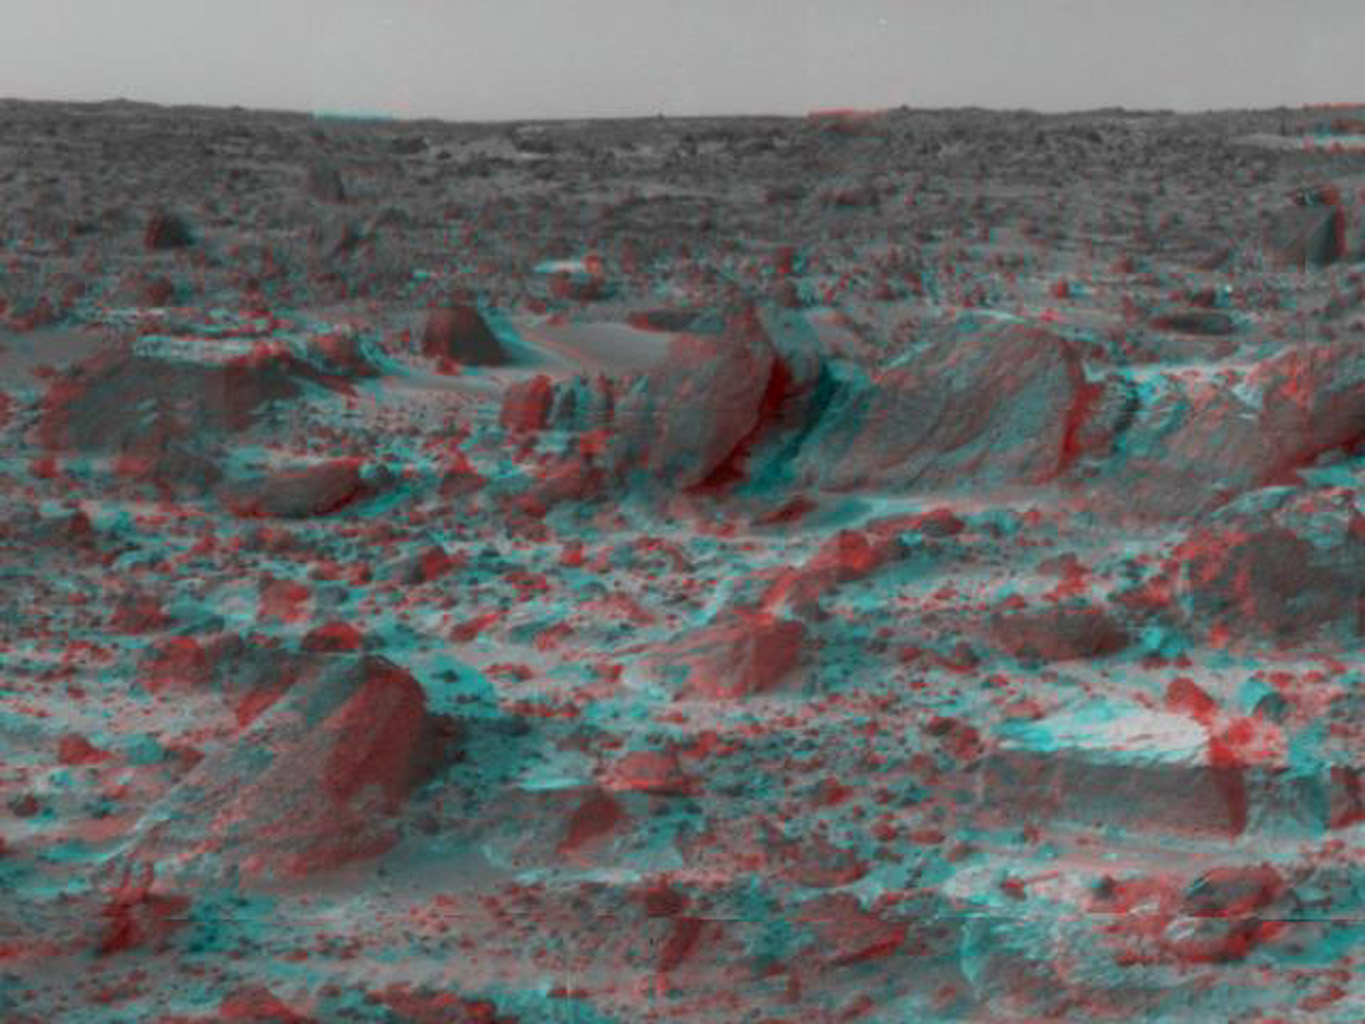 Many prominent rocks near the Sagan Memorial Station are featured in this image from NASA's Mars Pathfinder. 'Shark', 'Half-Dome', and 'Pumpkin' are at center 3-D glasses are necessary to identify surface detail.